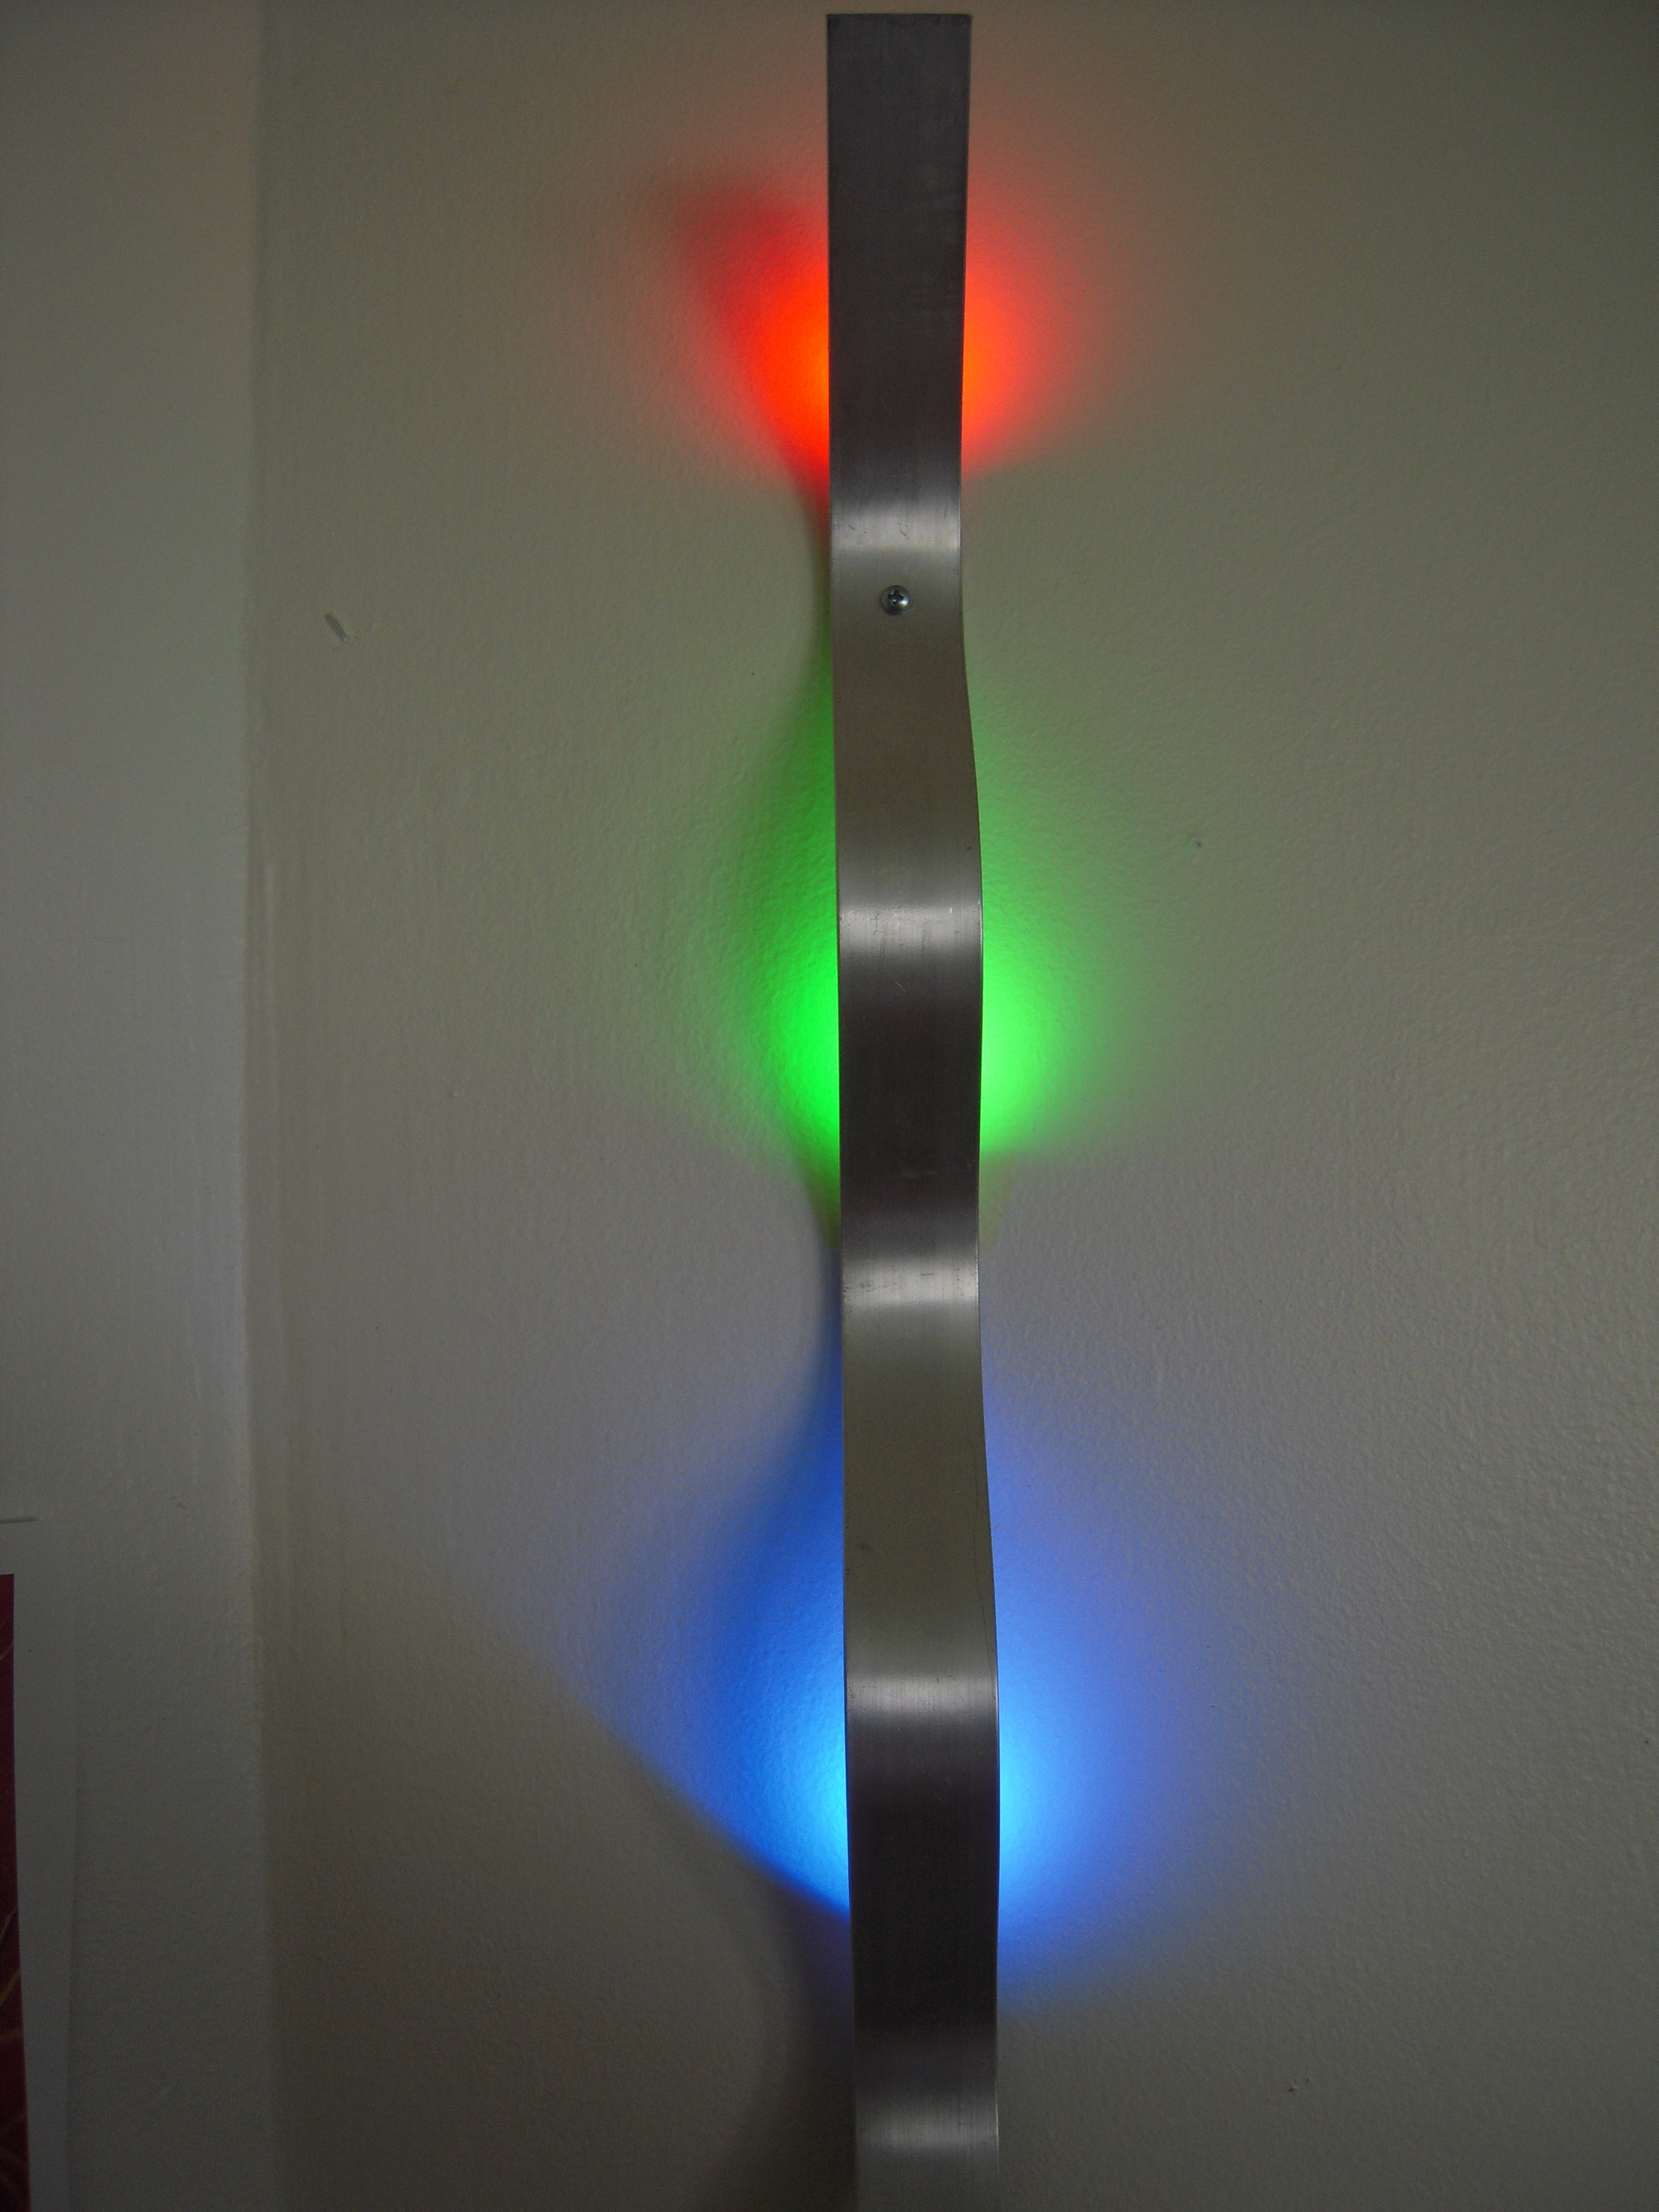 Make Colorful Light Art With Led Lighting And Your Existing Wall In Well Known Wall Light Box Art (View 13 of 15)